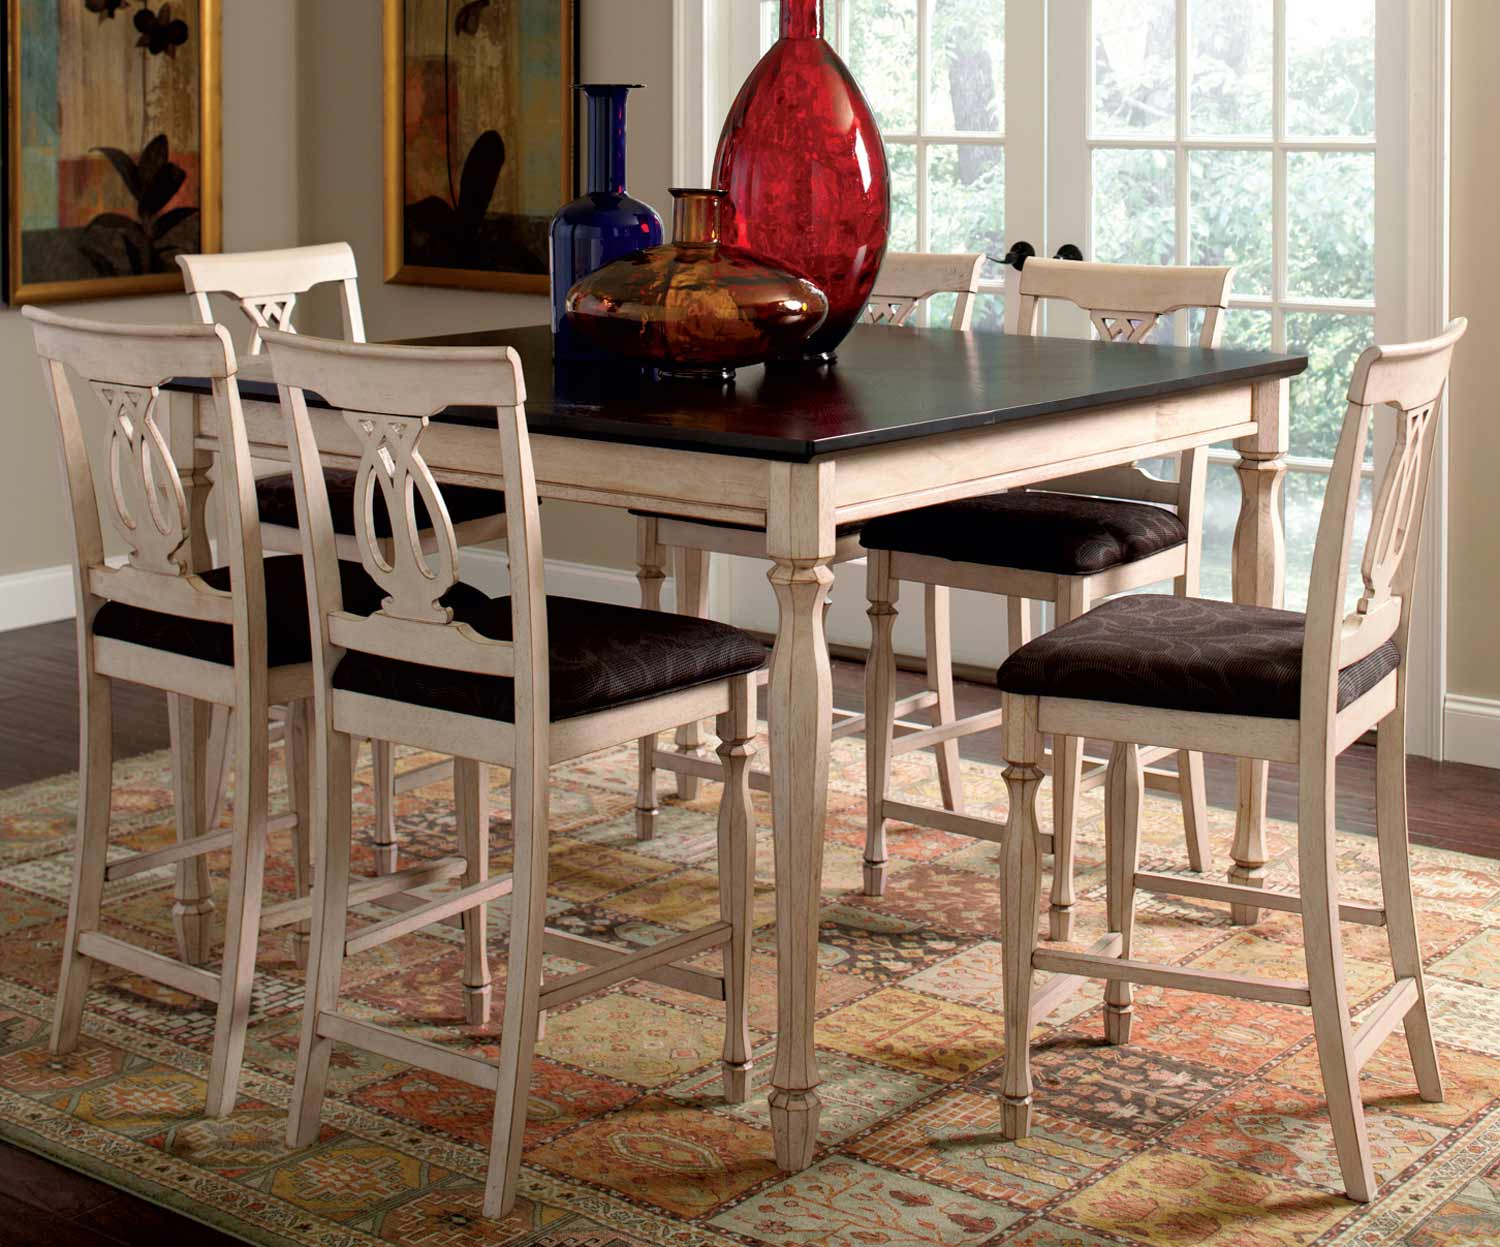 Coaster Camille Counter Height Dining Set - Antique White & Marlot